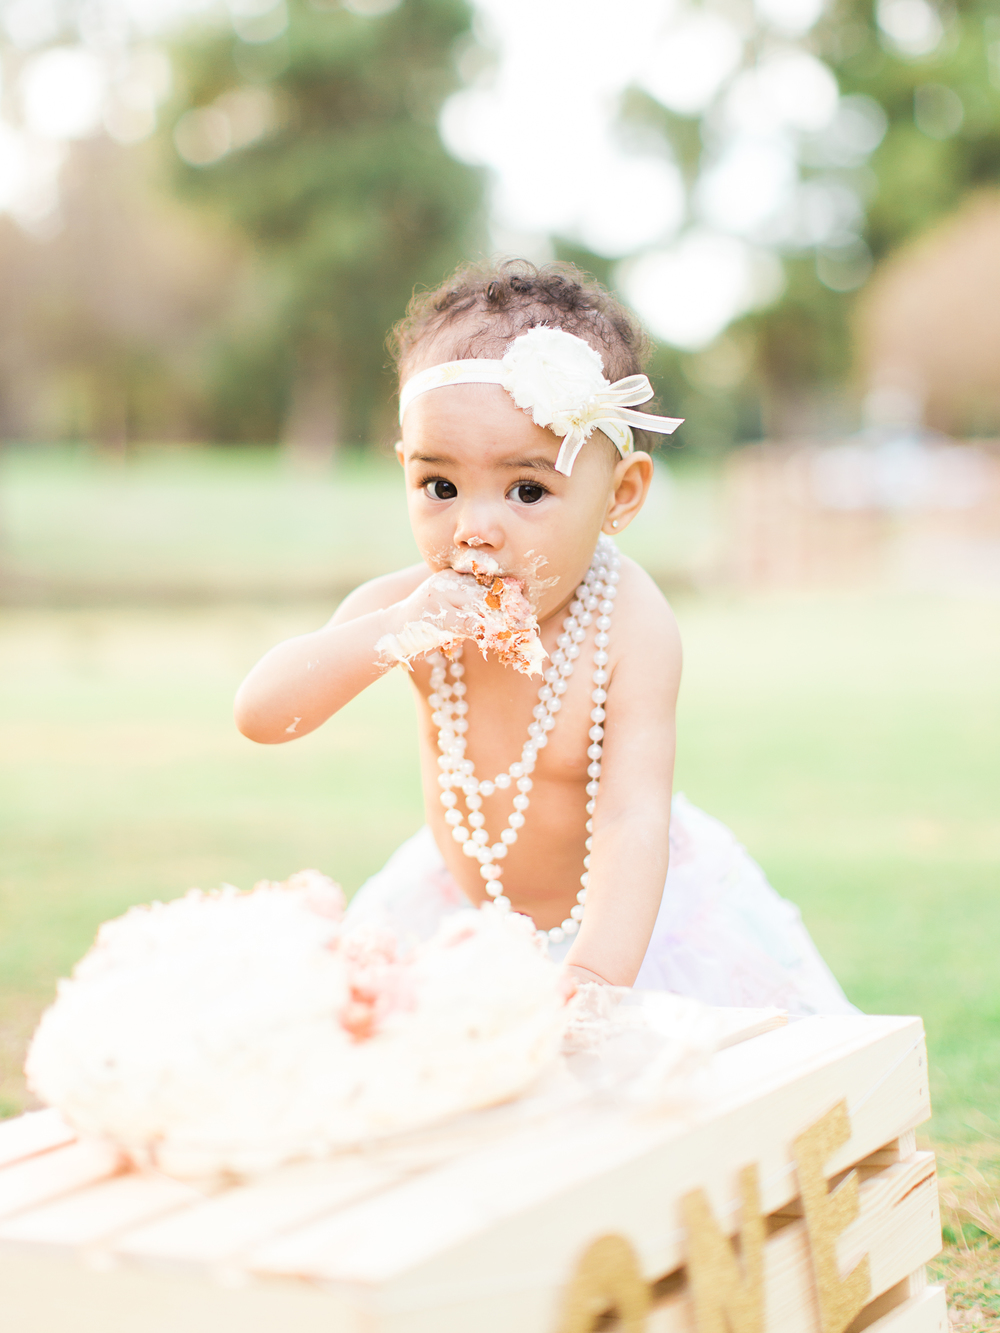 AleiahRei_1stBirthday_Brandon J Ferlin Photography-92.jpg